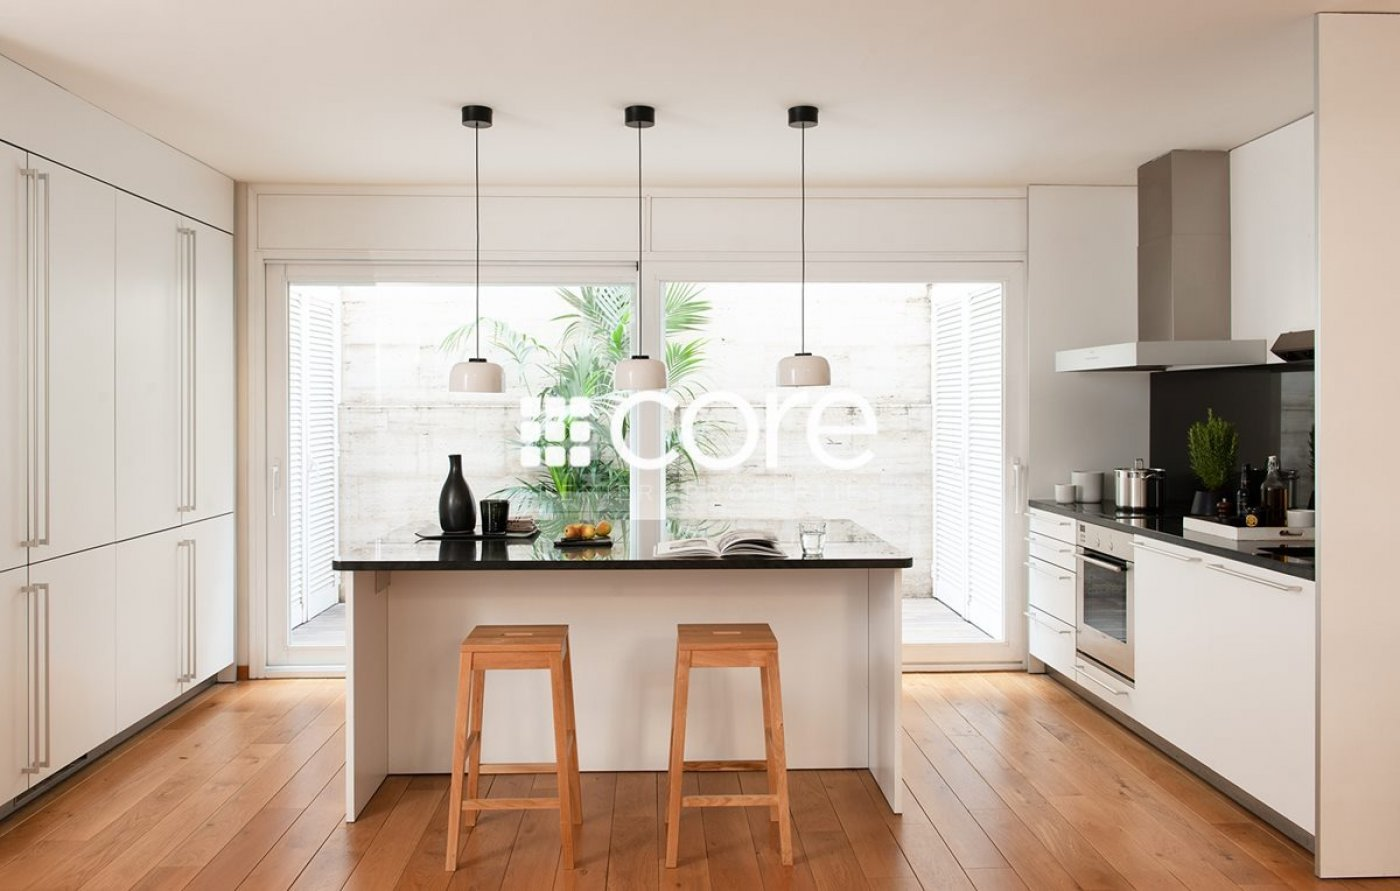 57/5000 Classic style villa for rent in Eixample